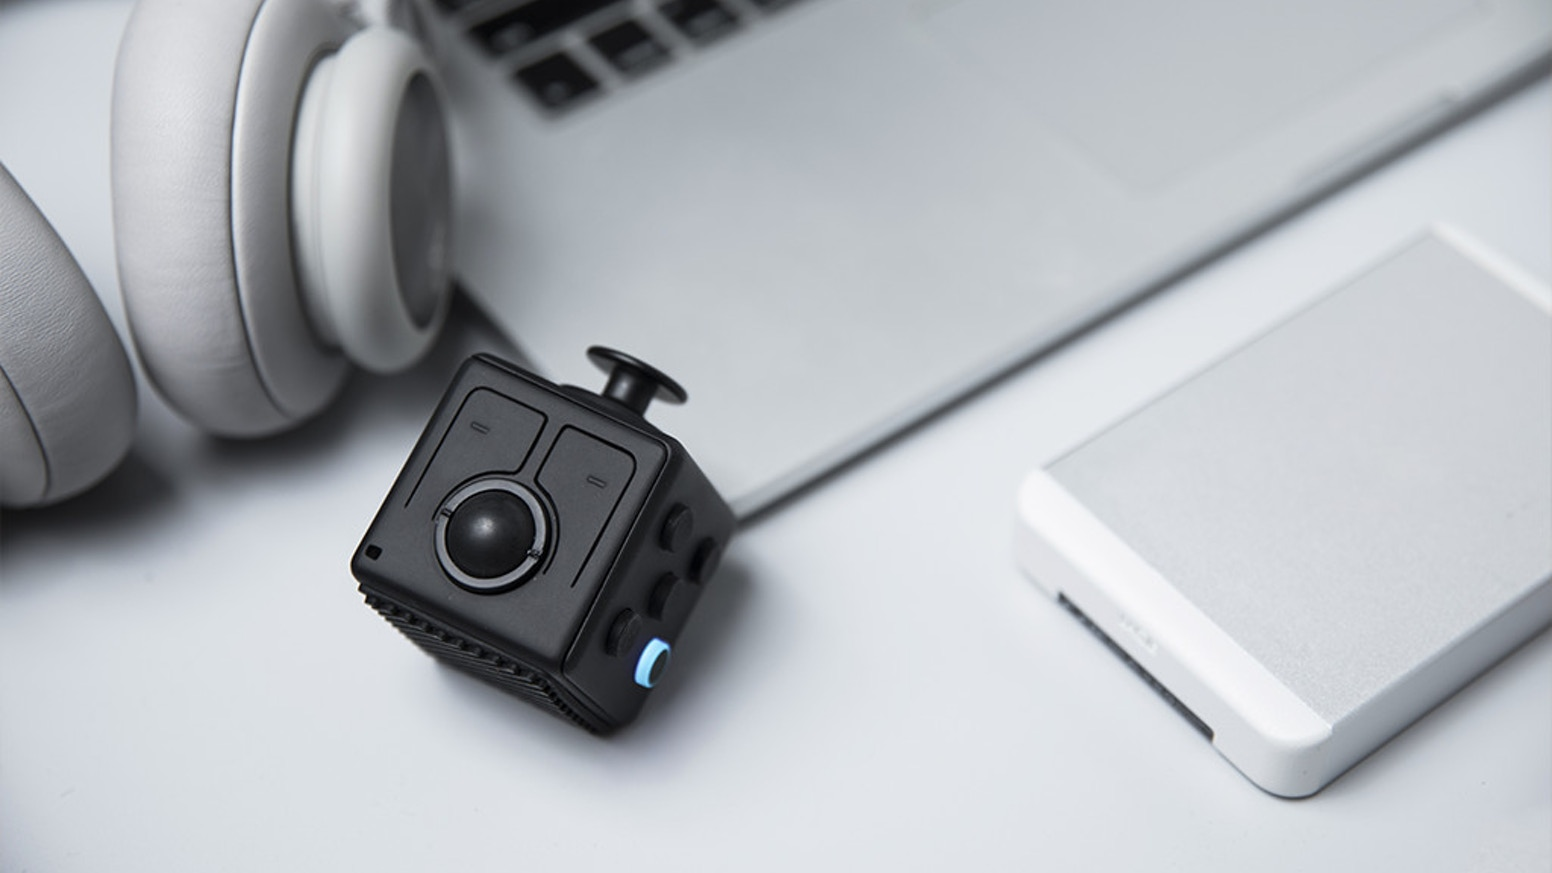 Unprecedented Bluetooth-powered fidget gadget, allowing fidgeters to level up at work and play!